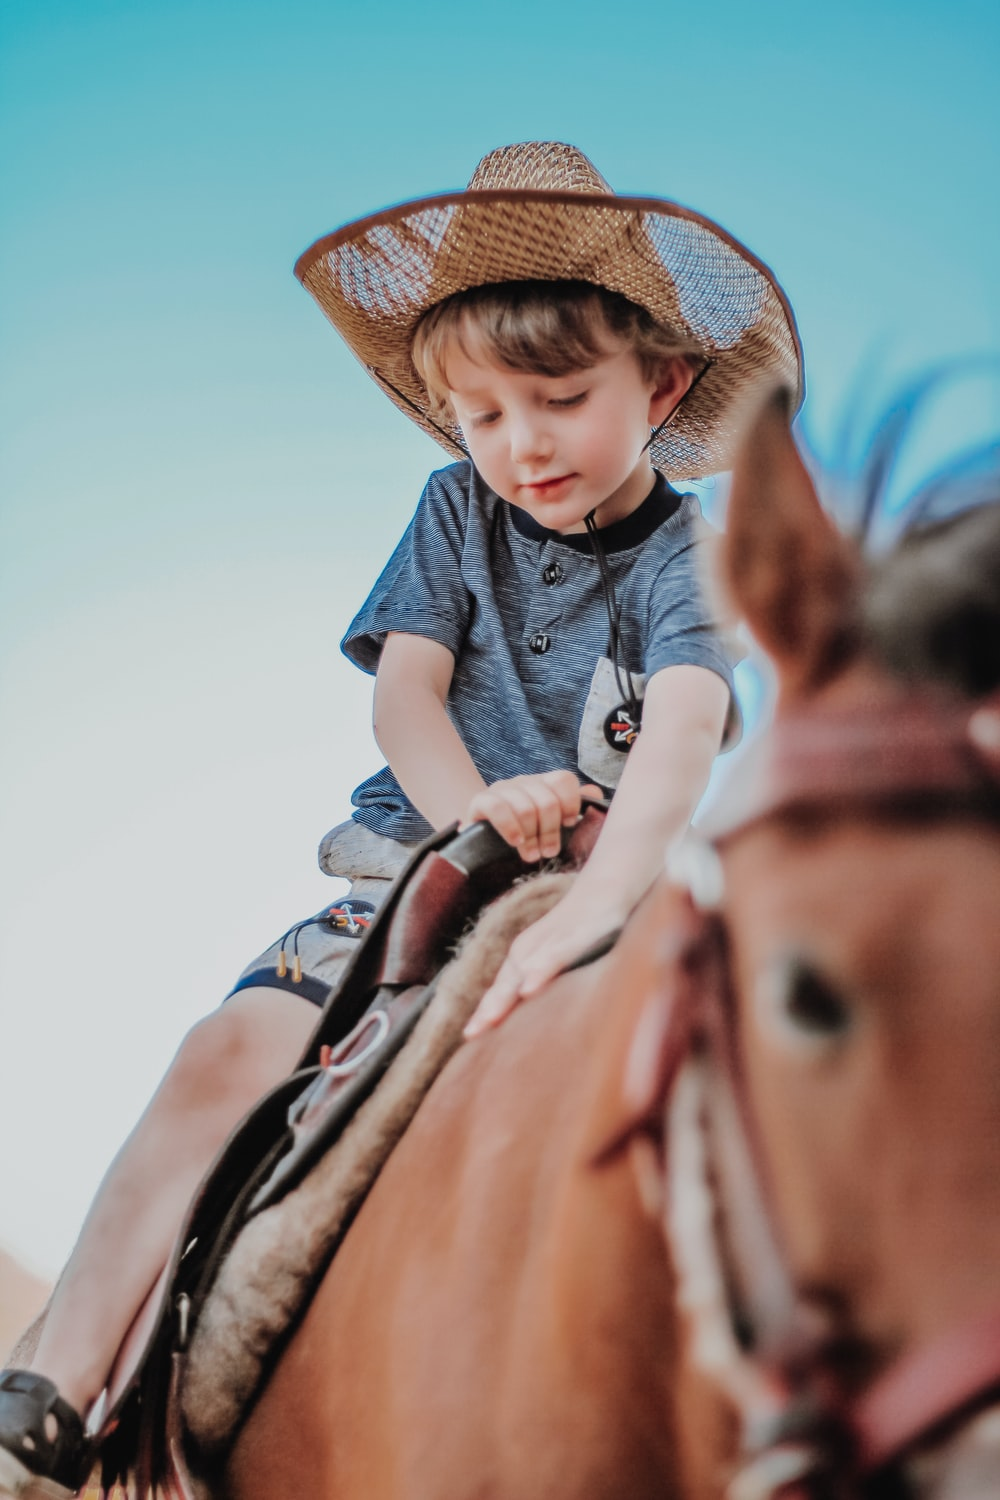 boy in blue and white polo shirt and brown cowboy hat riding brown horse during daytime